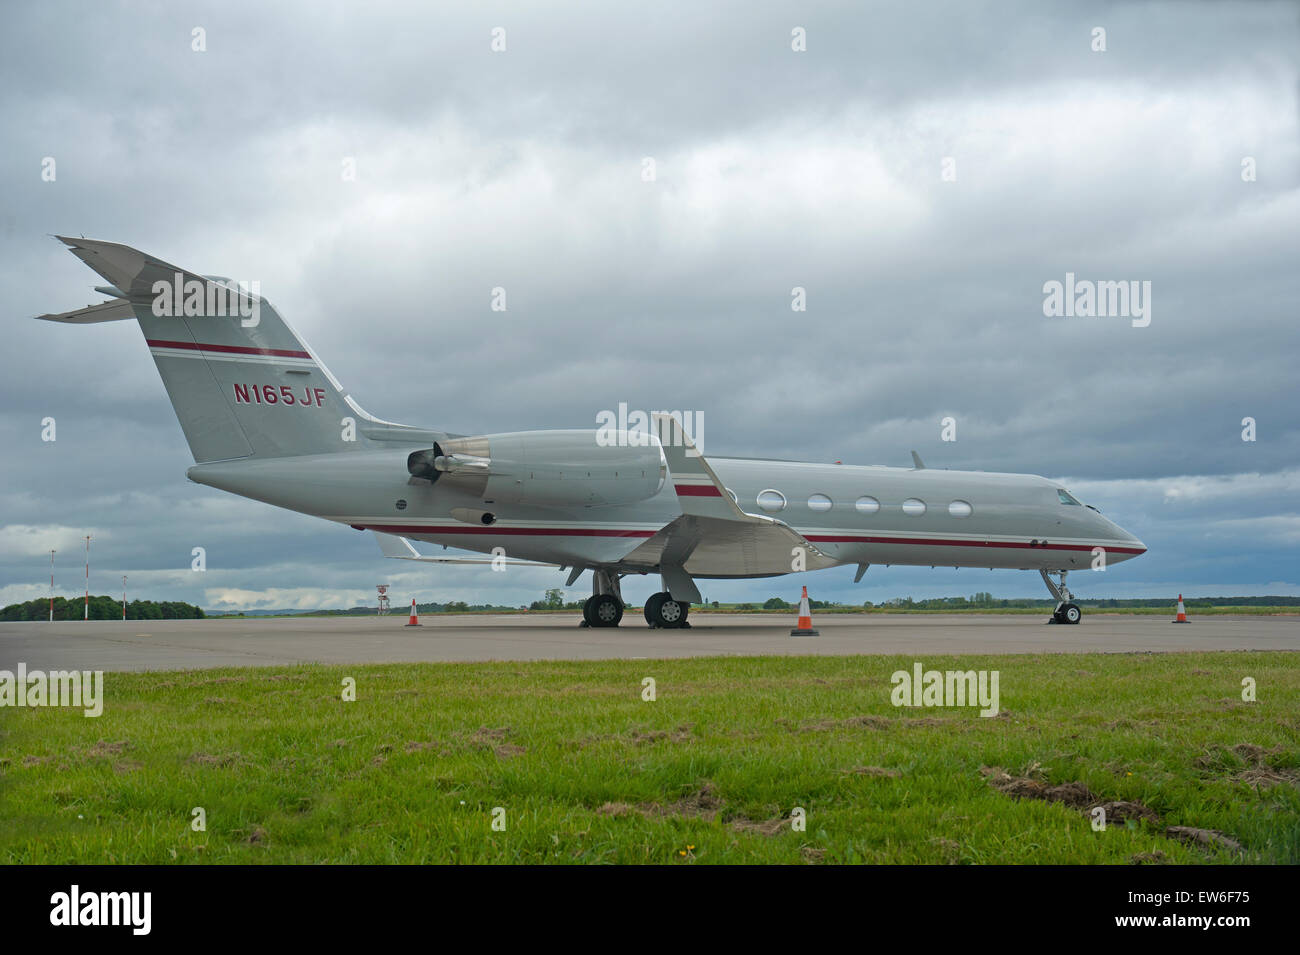 Gulfstream Aerospace G-IV Gulfstream IV-SP  at Inverness Airport.  SCO 9892. - Stock Image